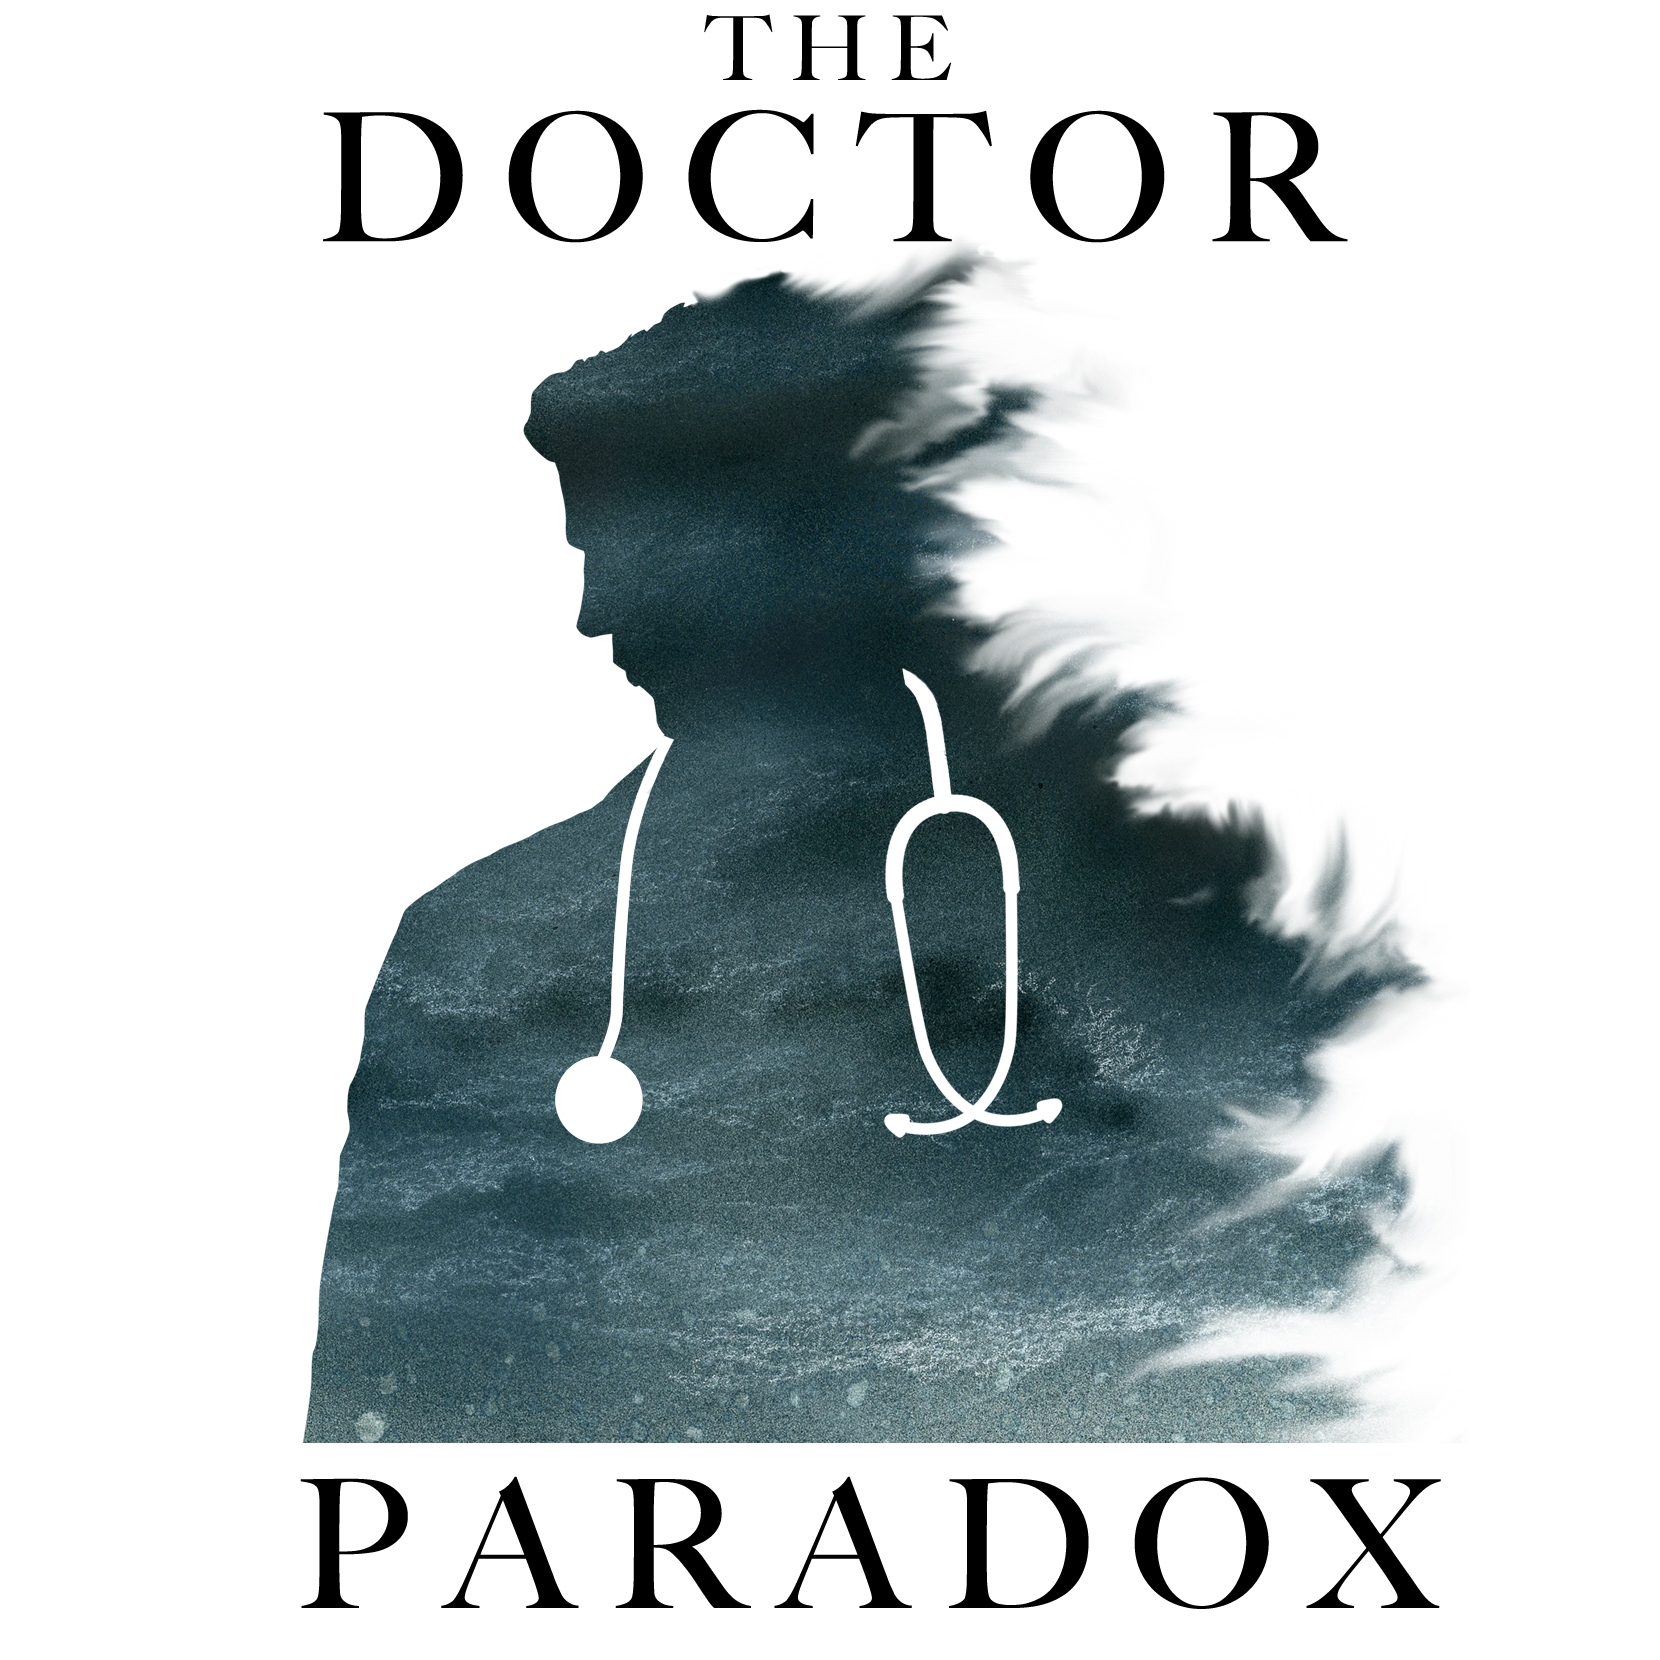 Doctors Paradox PaddyB_PhysicianSilhouette_toSize06 (1)